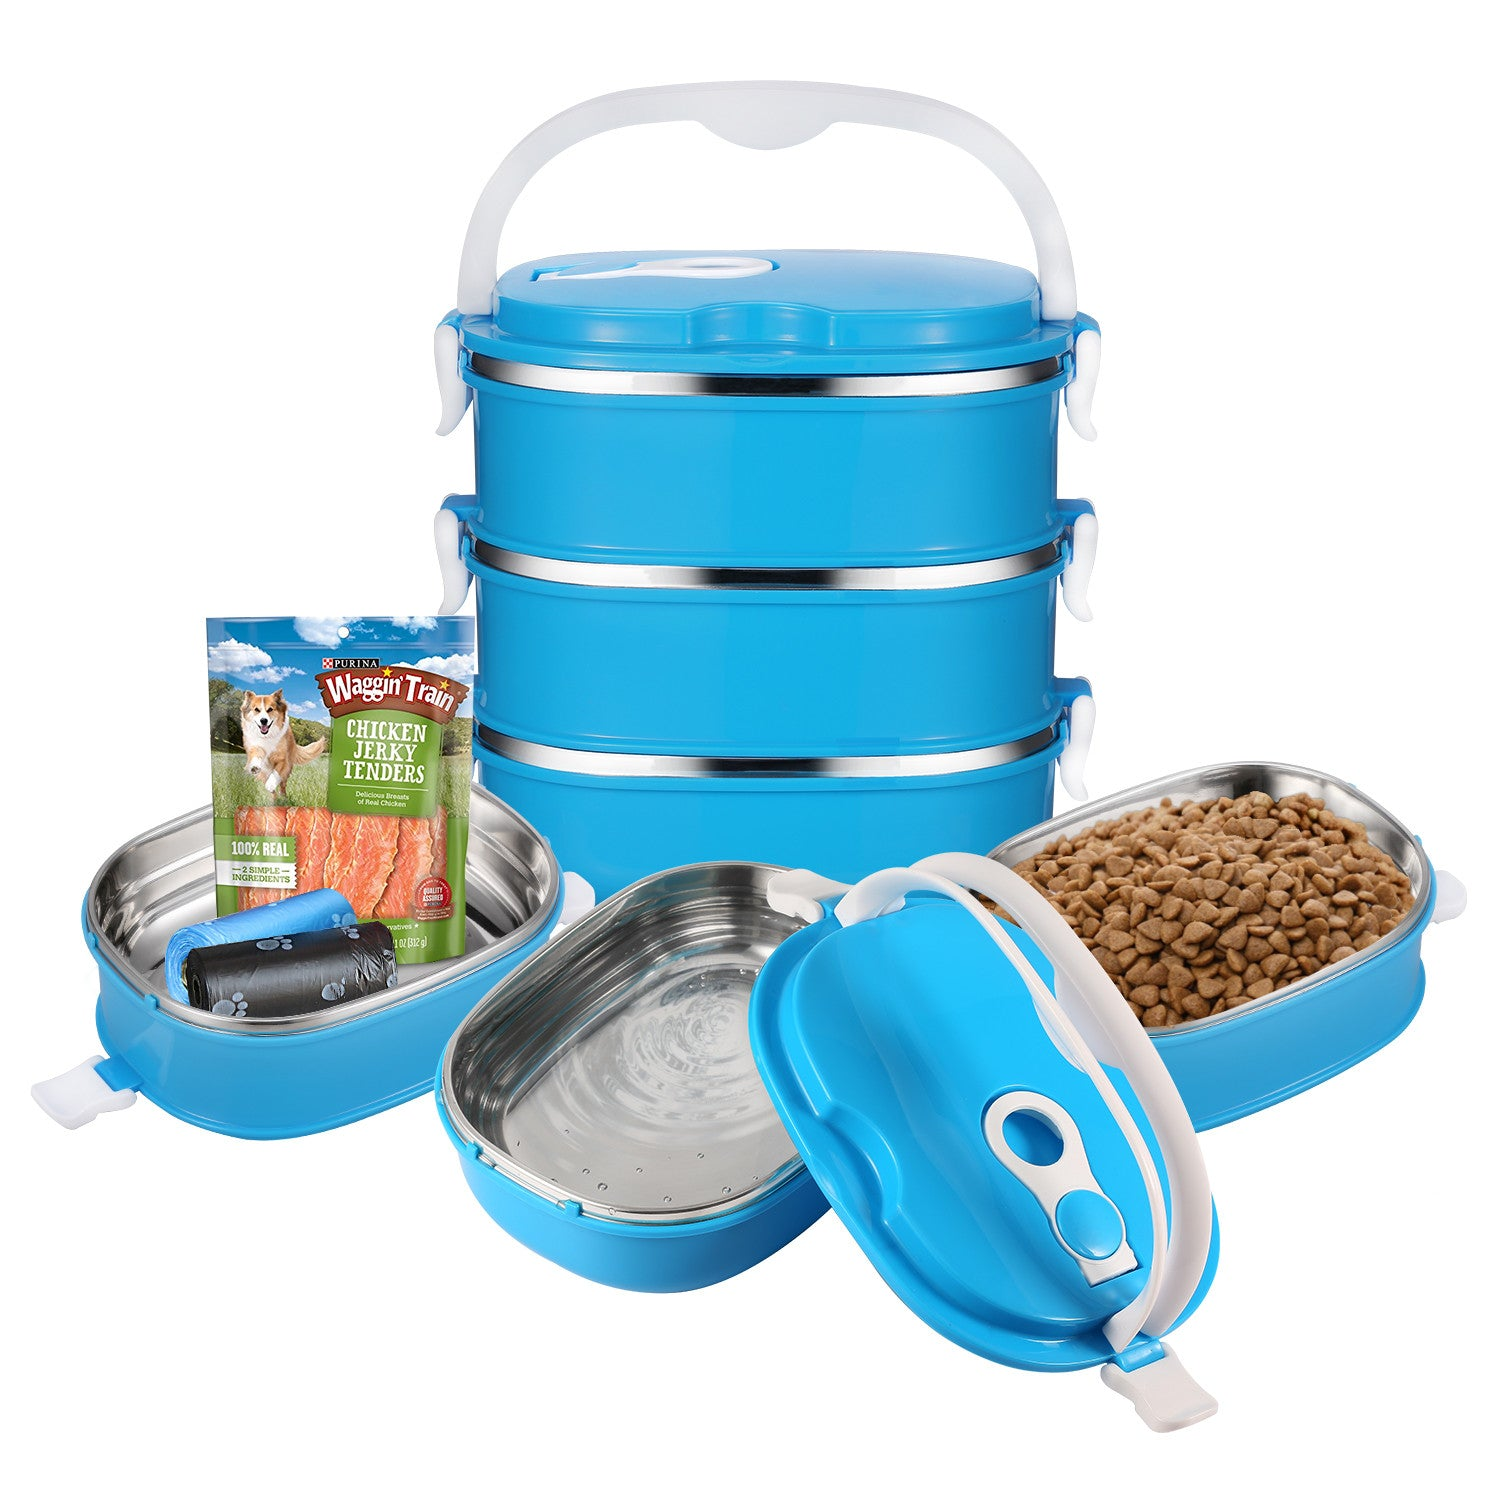 3-Tier Portable Travel Feeding Bowl for Pets (dogs and cats)